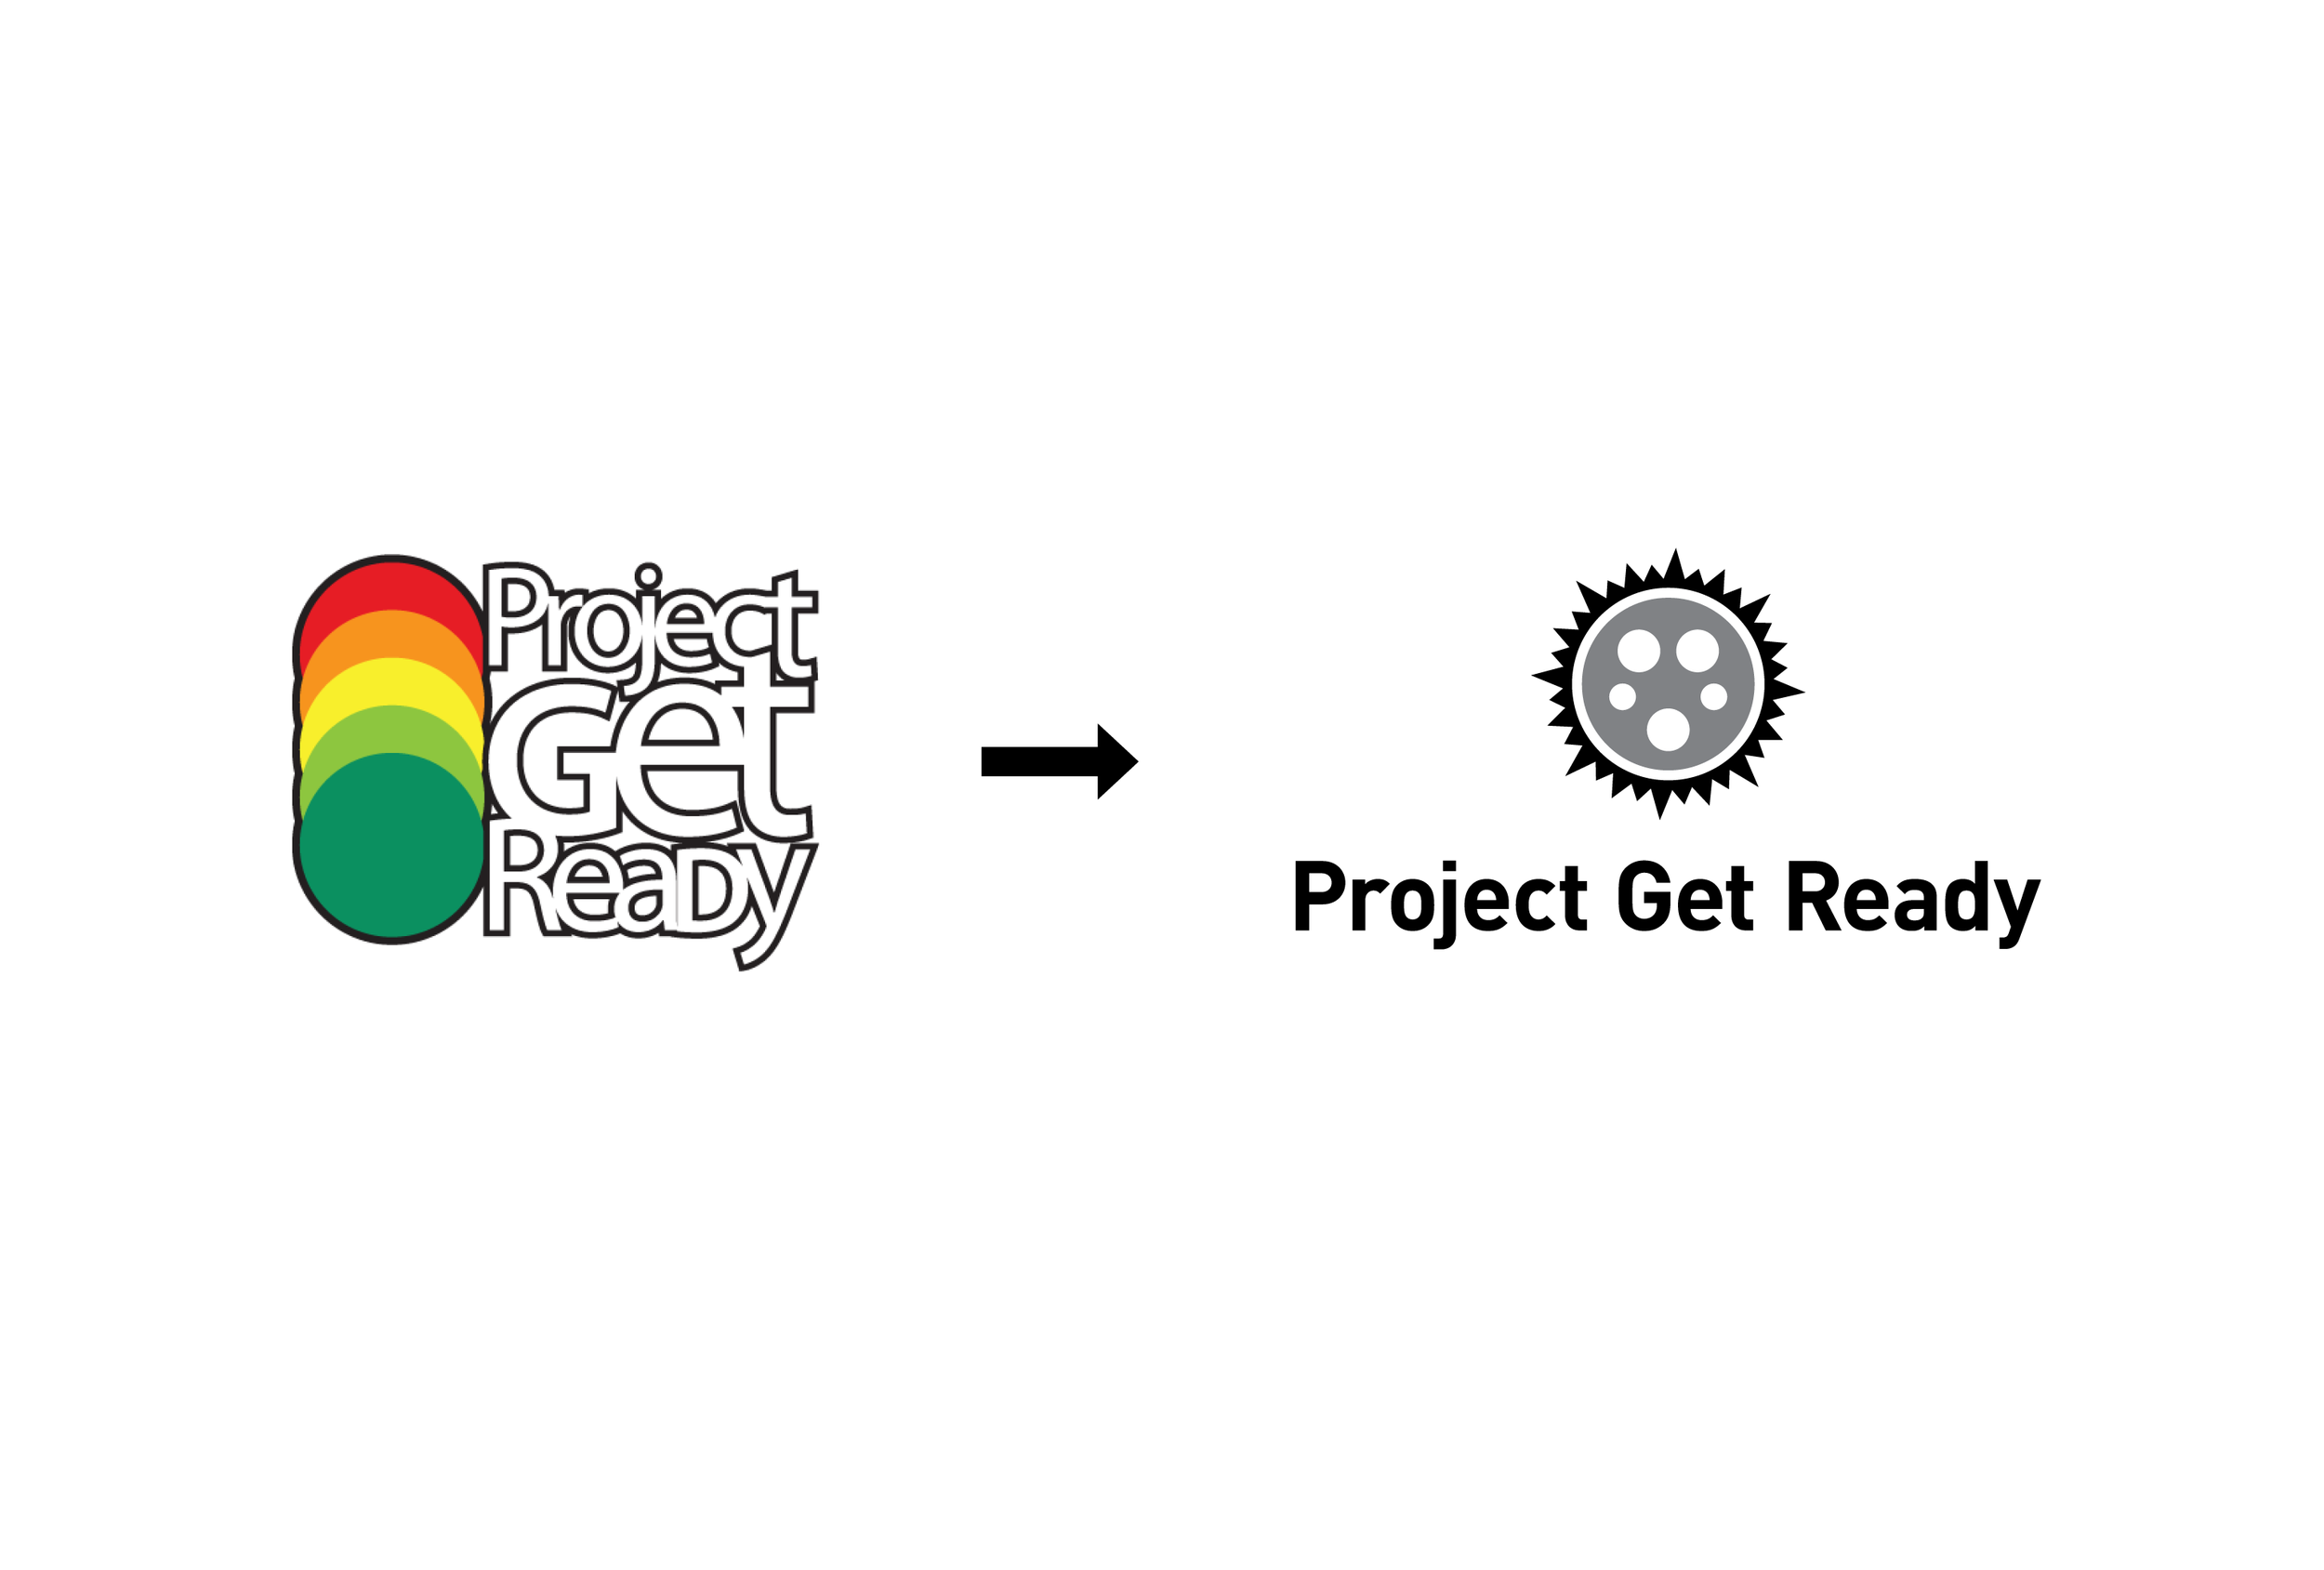 Project Get Ready logo.